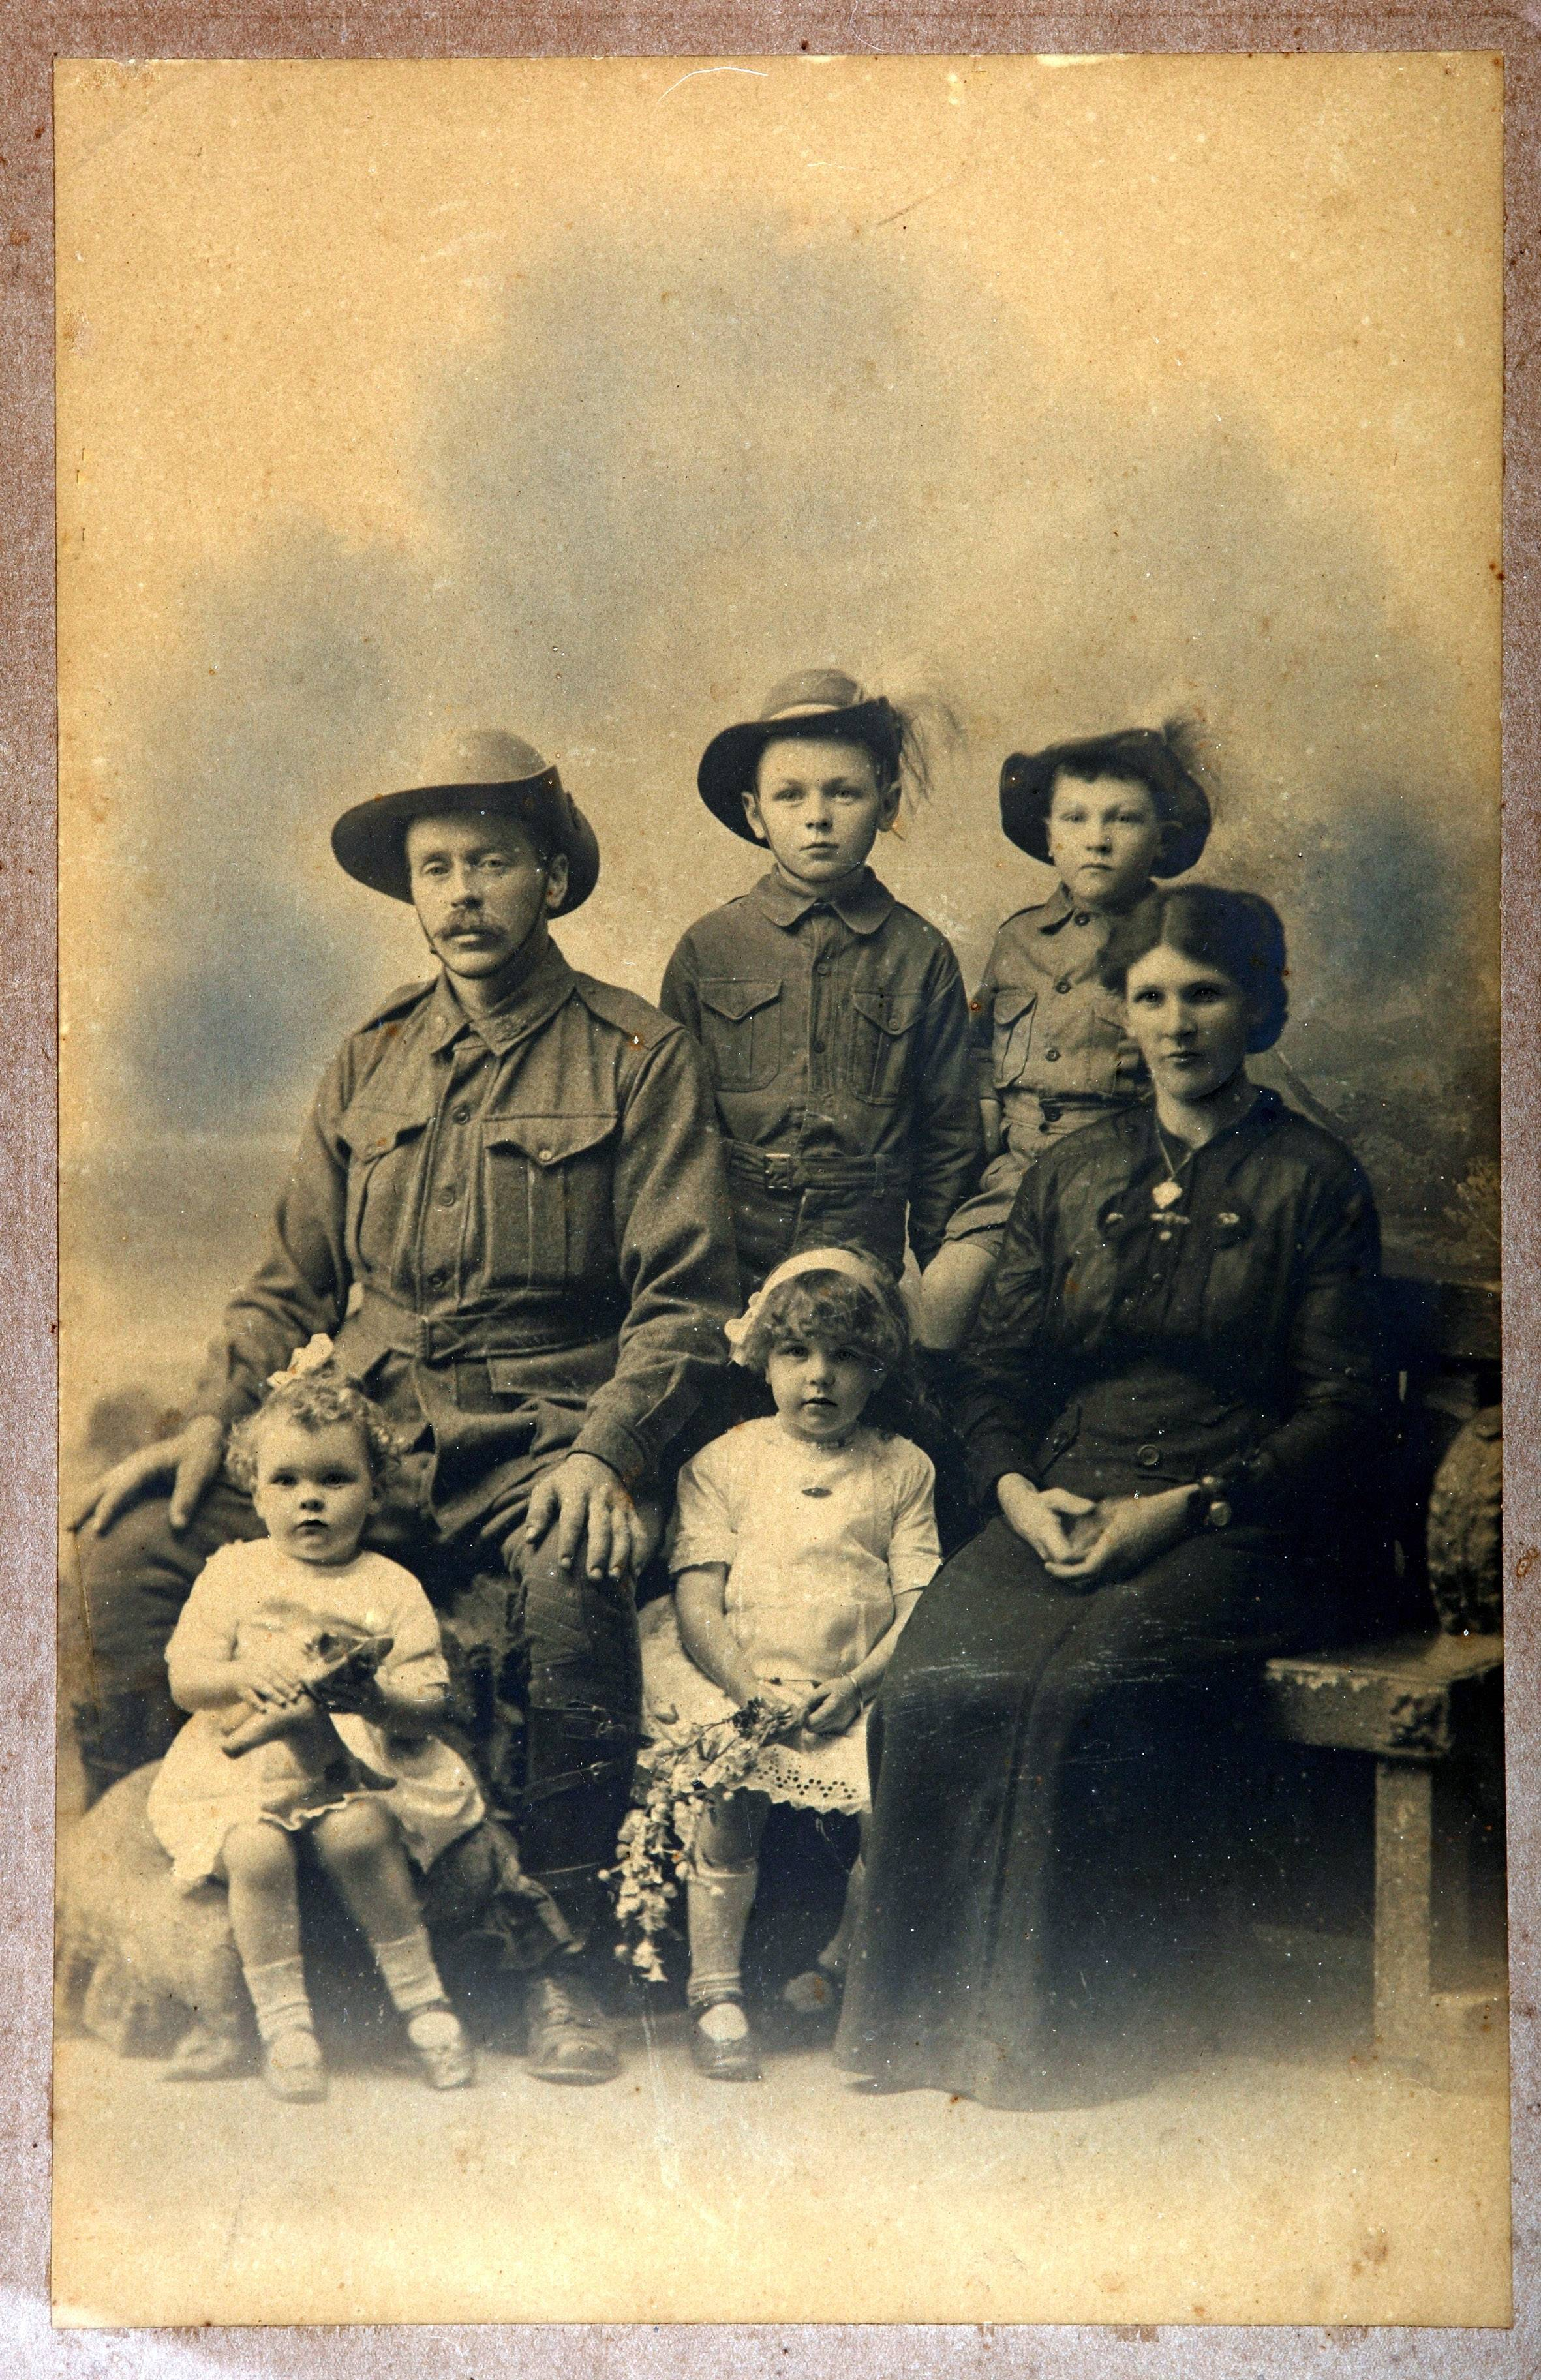 In this undated photo provided by the family, Australian soldier Andrew Bayne, rear left, poses with his wife and children in Brisbane, Australia, before leaving for the Western Front. Andrew Bayne, along with his brothers, enlisted for service in World War I. Andrew Bayne's journey took him to the battlefields of Bullecourt, Wytschaete, and Ypres before he was killed in action near Messines Ridge, Belgium on Aug. 19, 1917.